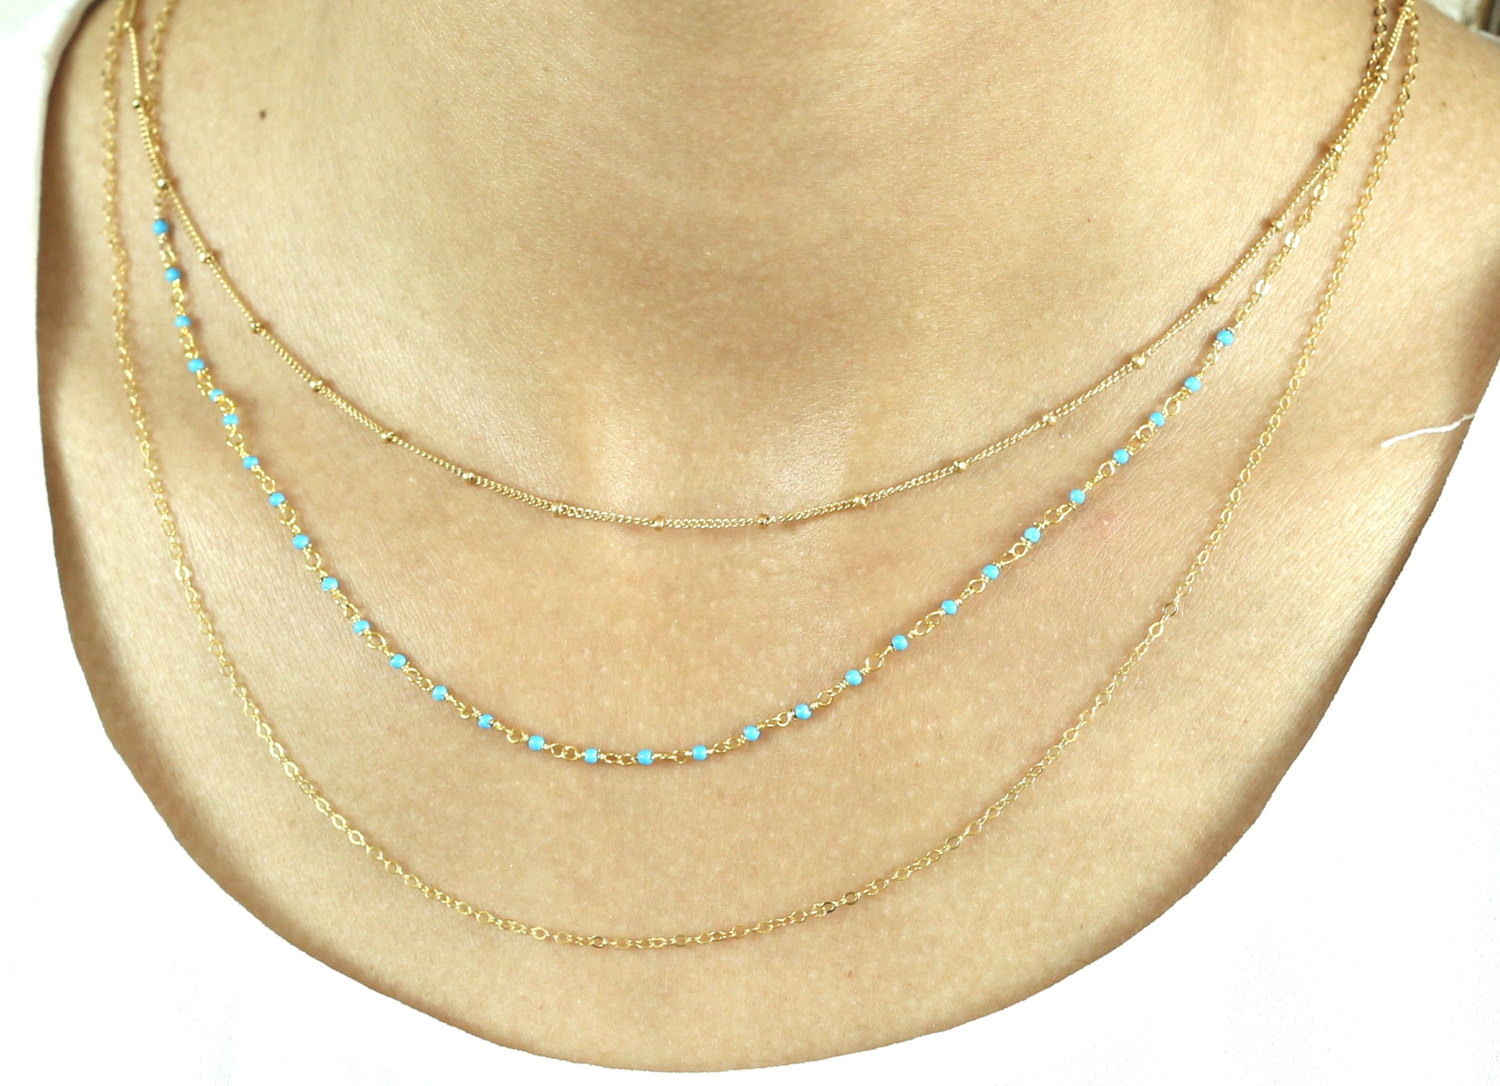 a346702f7e4b5 Tiny balls necklace 14k Gold Fill, Sterling Silver, Rose Gold / Layering,  Dainty Beaded Satellite Chain